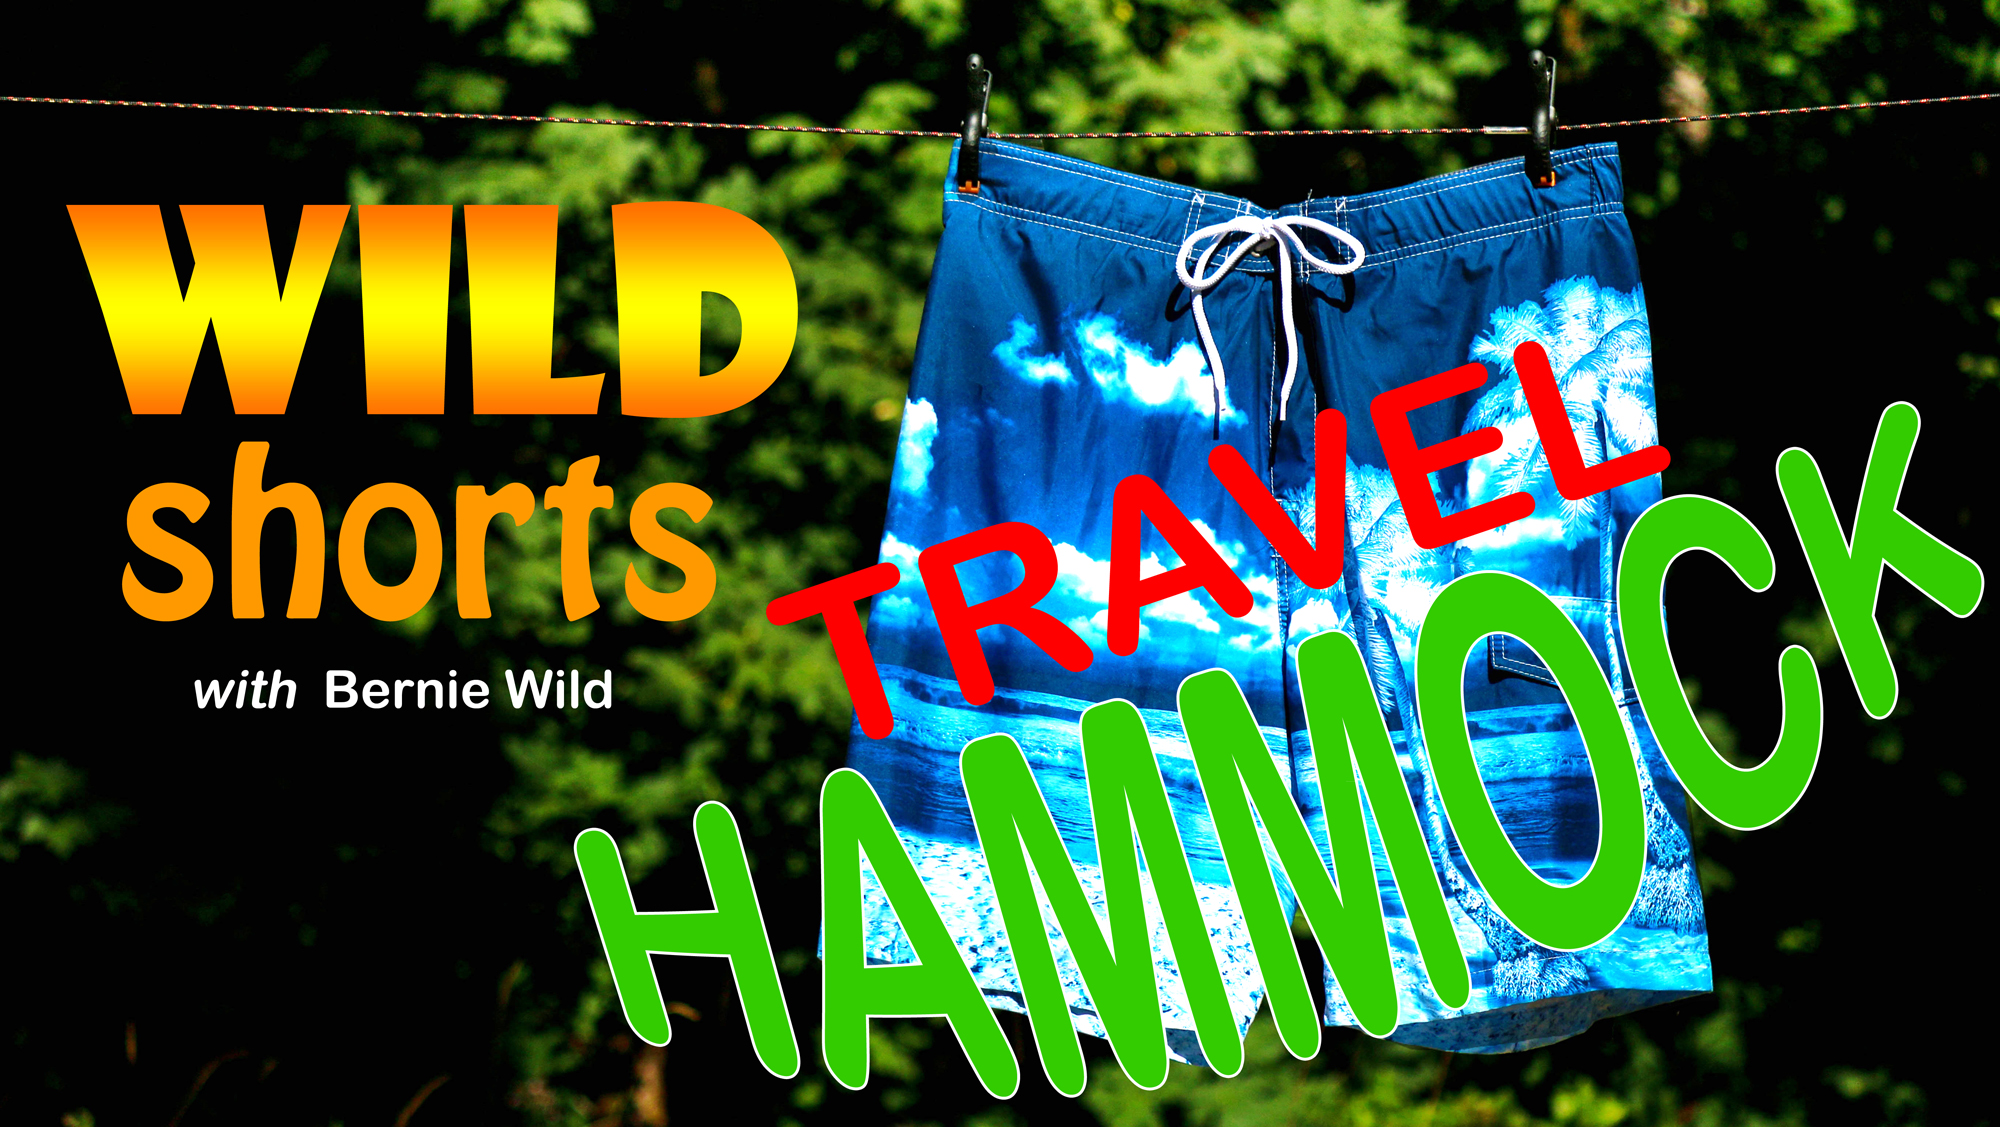 Wild Shorts – Travel Hammock